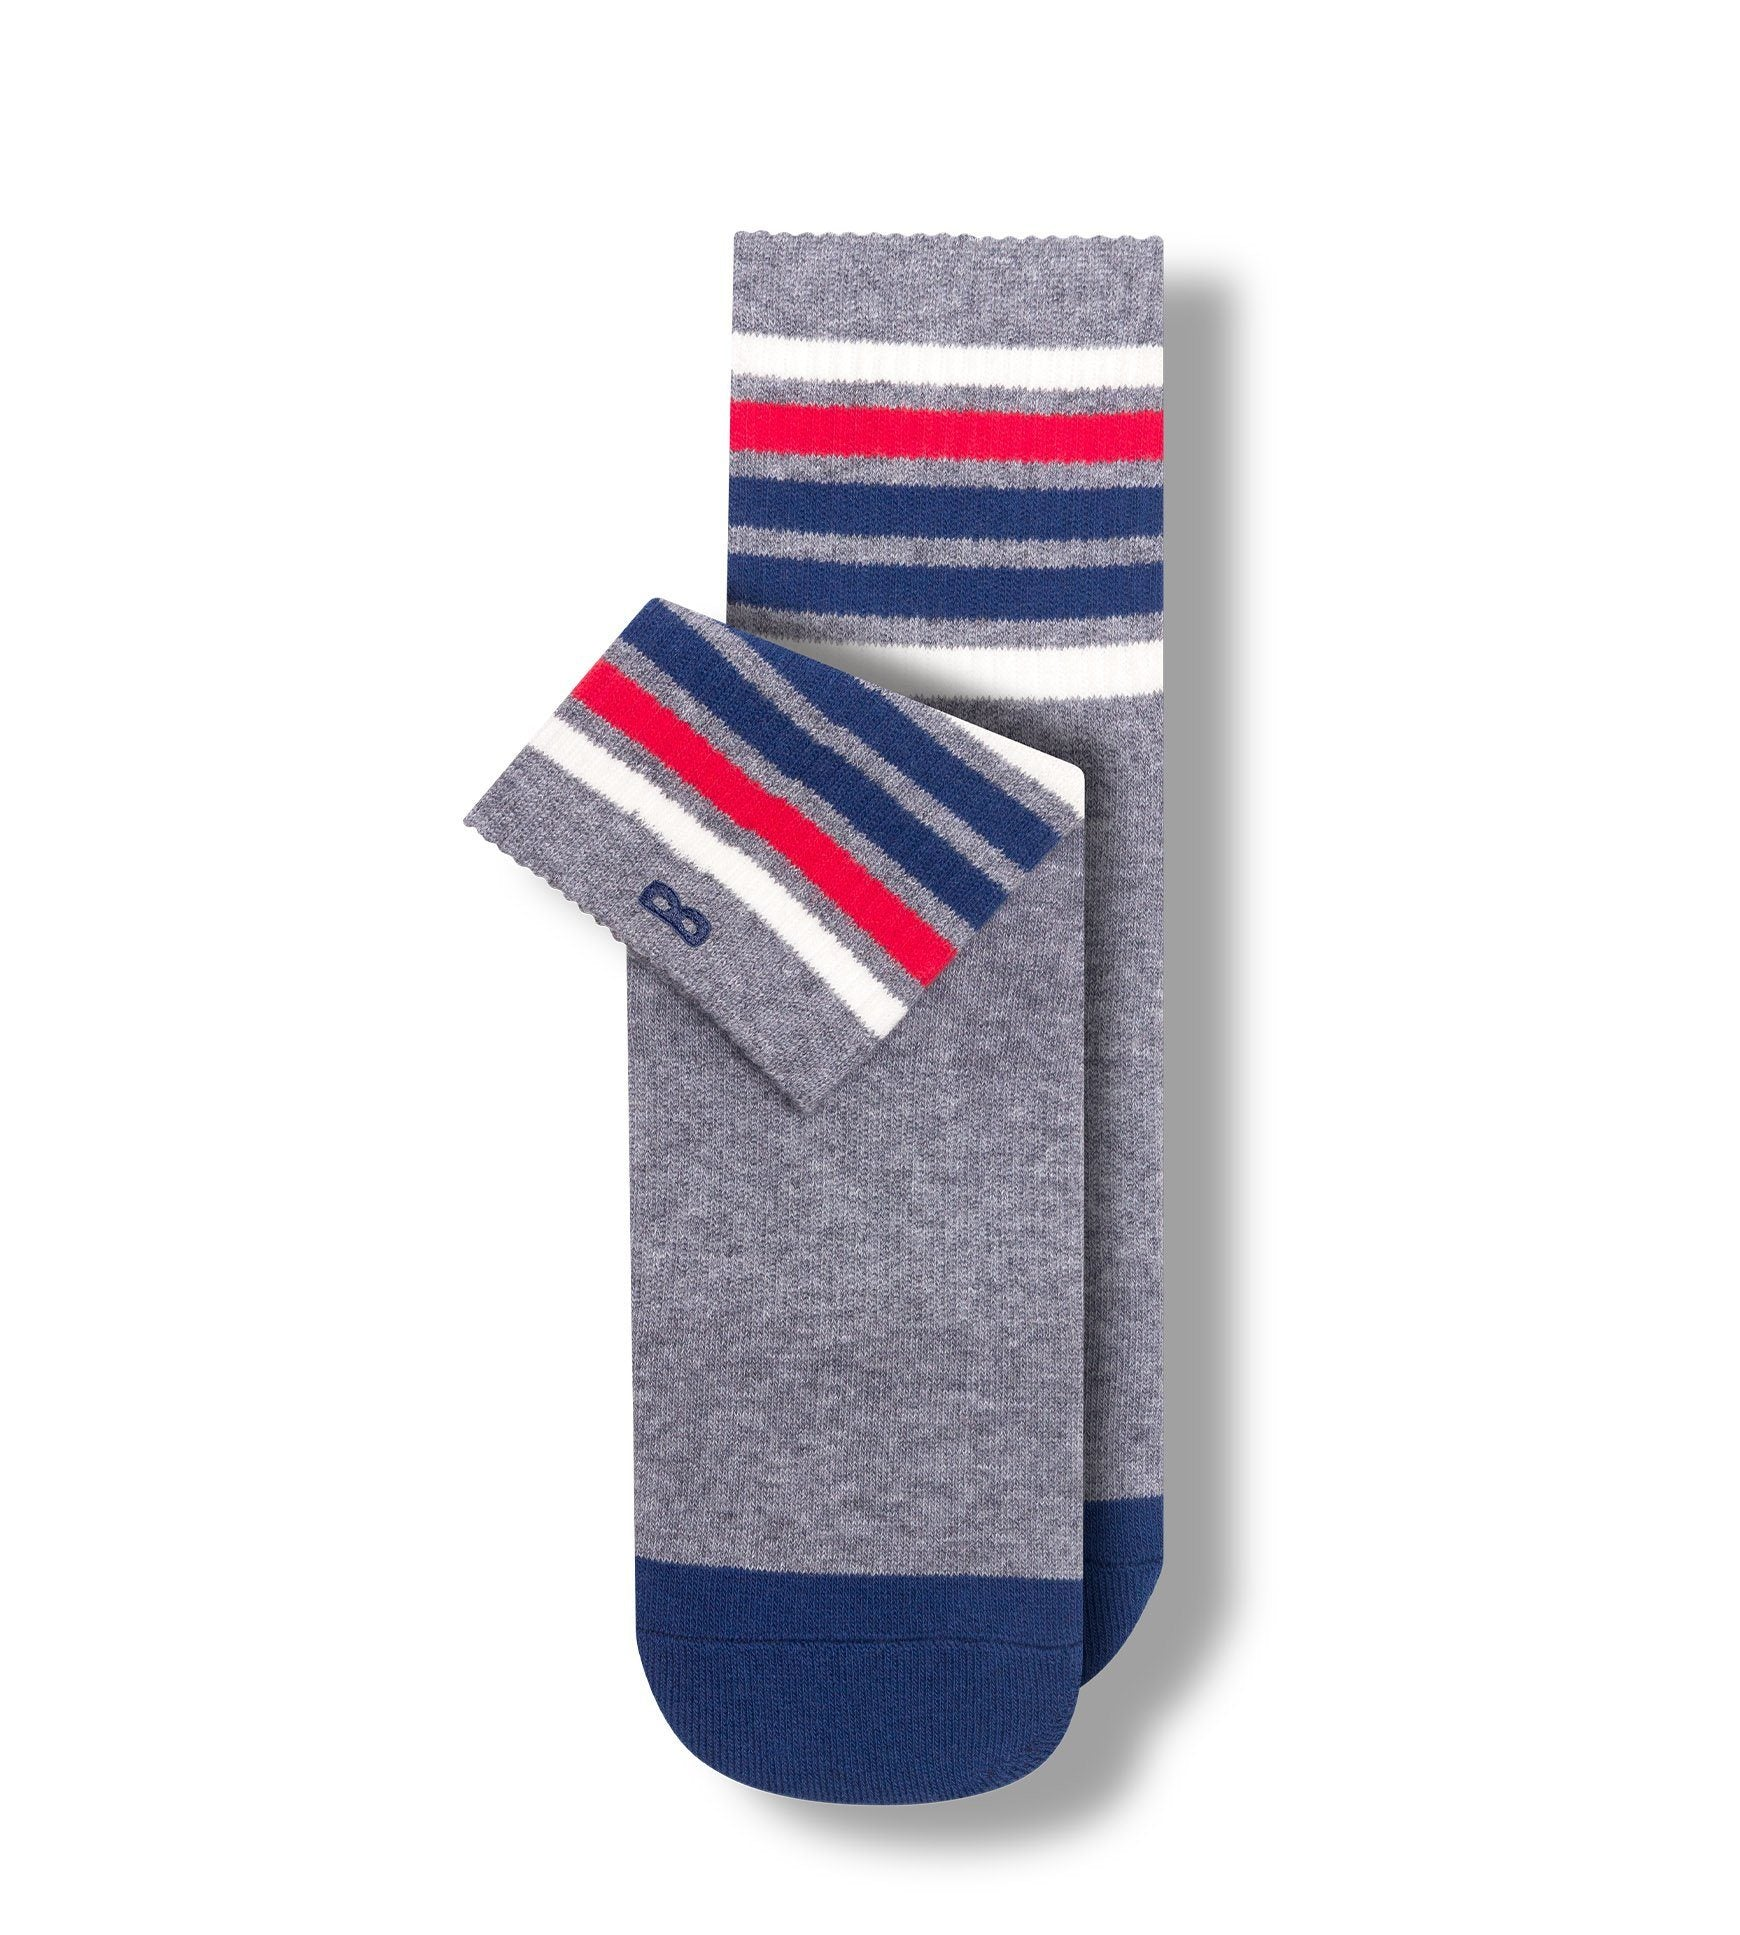 Long Story Short Men's Cushion Ankle Socks